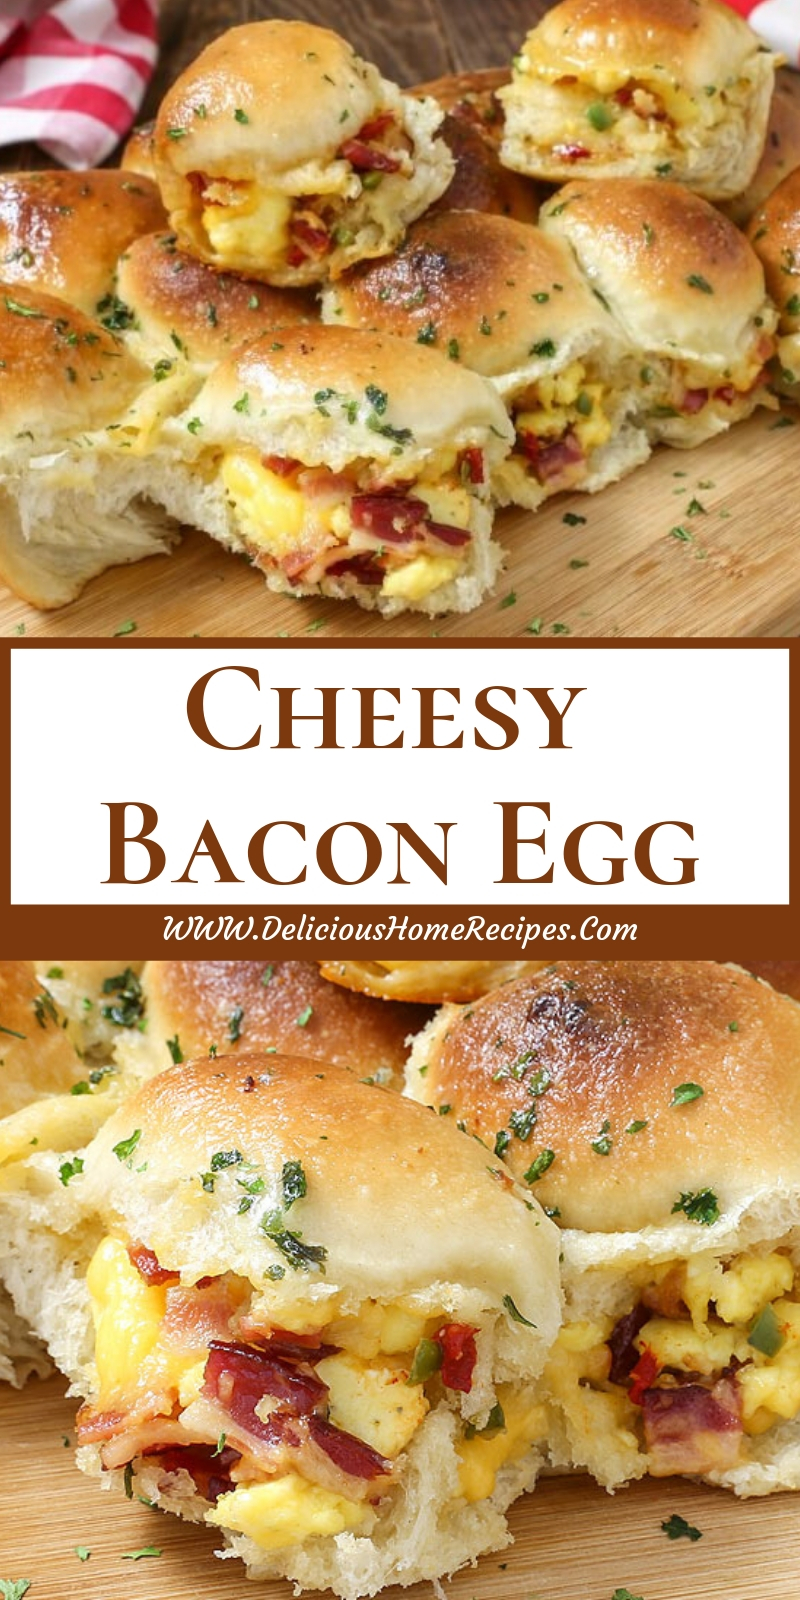 Cheesy Bacon Egg